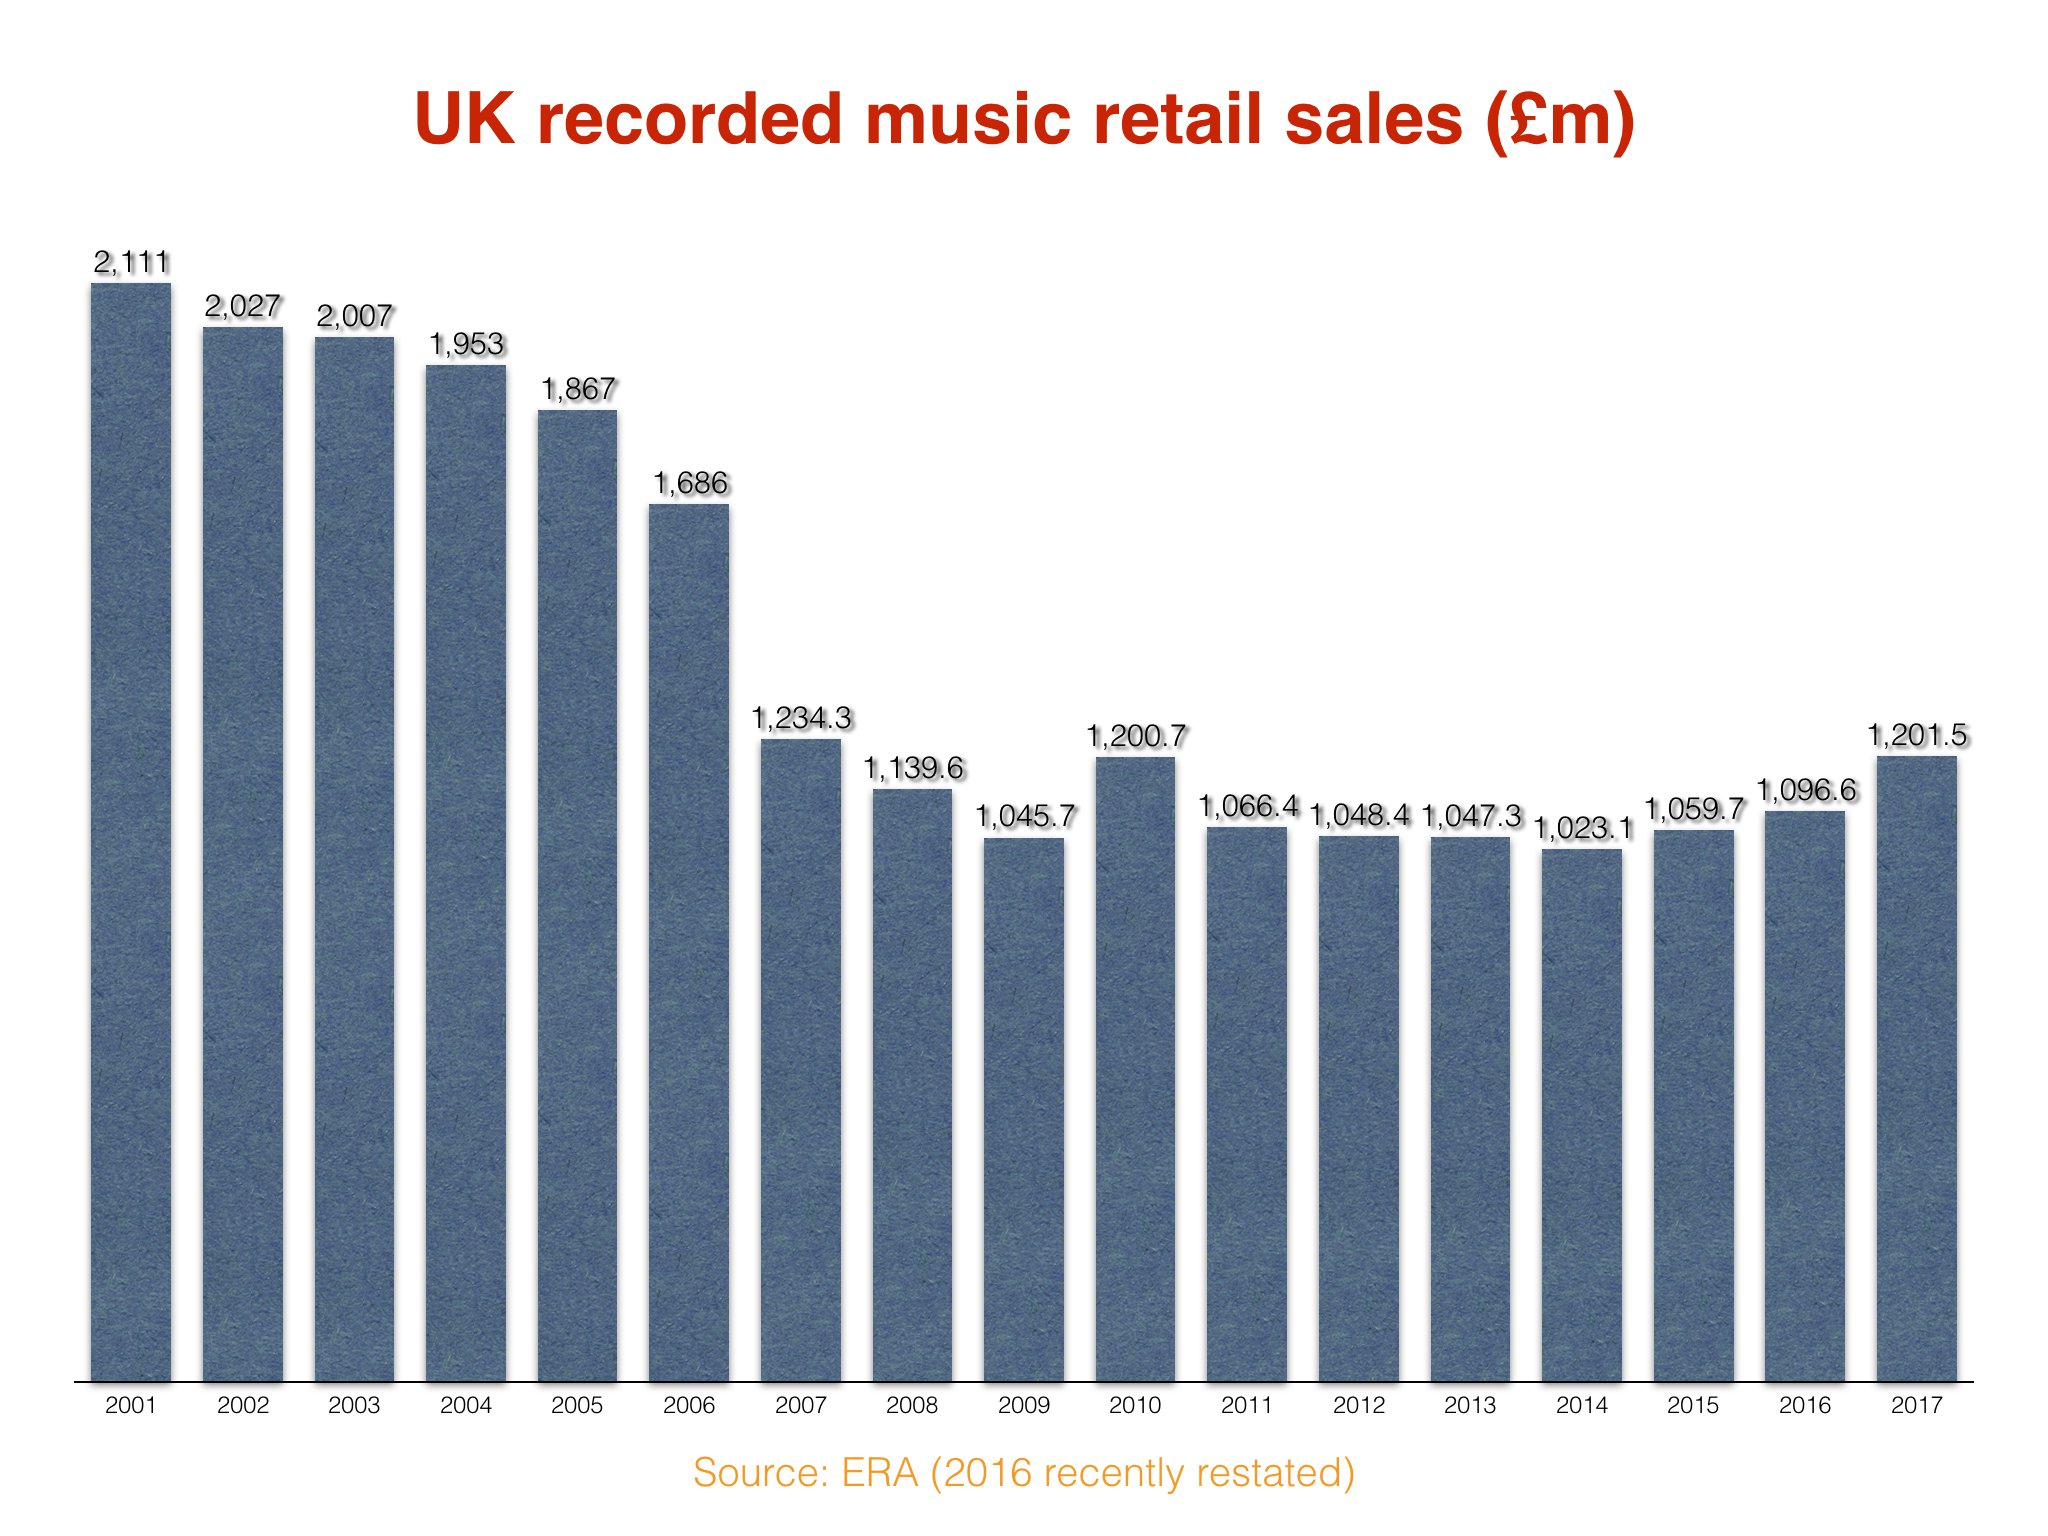 Music Sales on an Upward Trend in 2018?